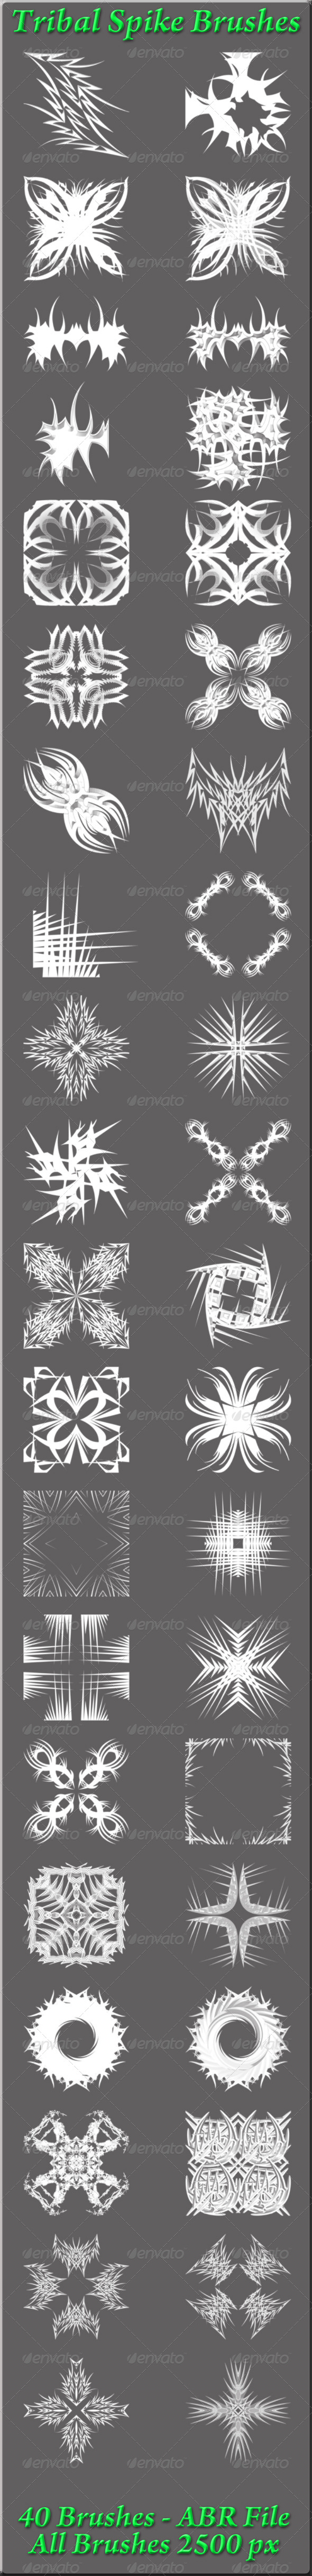 GraphicRiver Tribal Spike Brushes 5804315